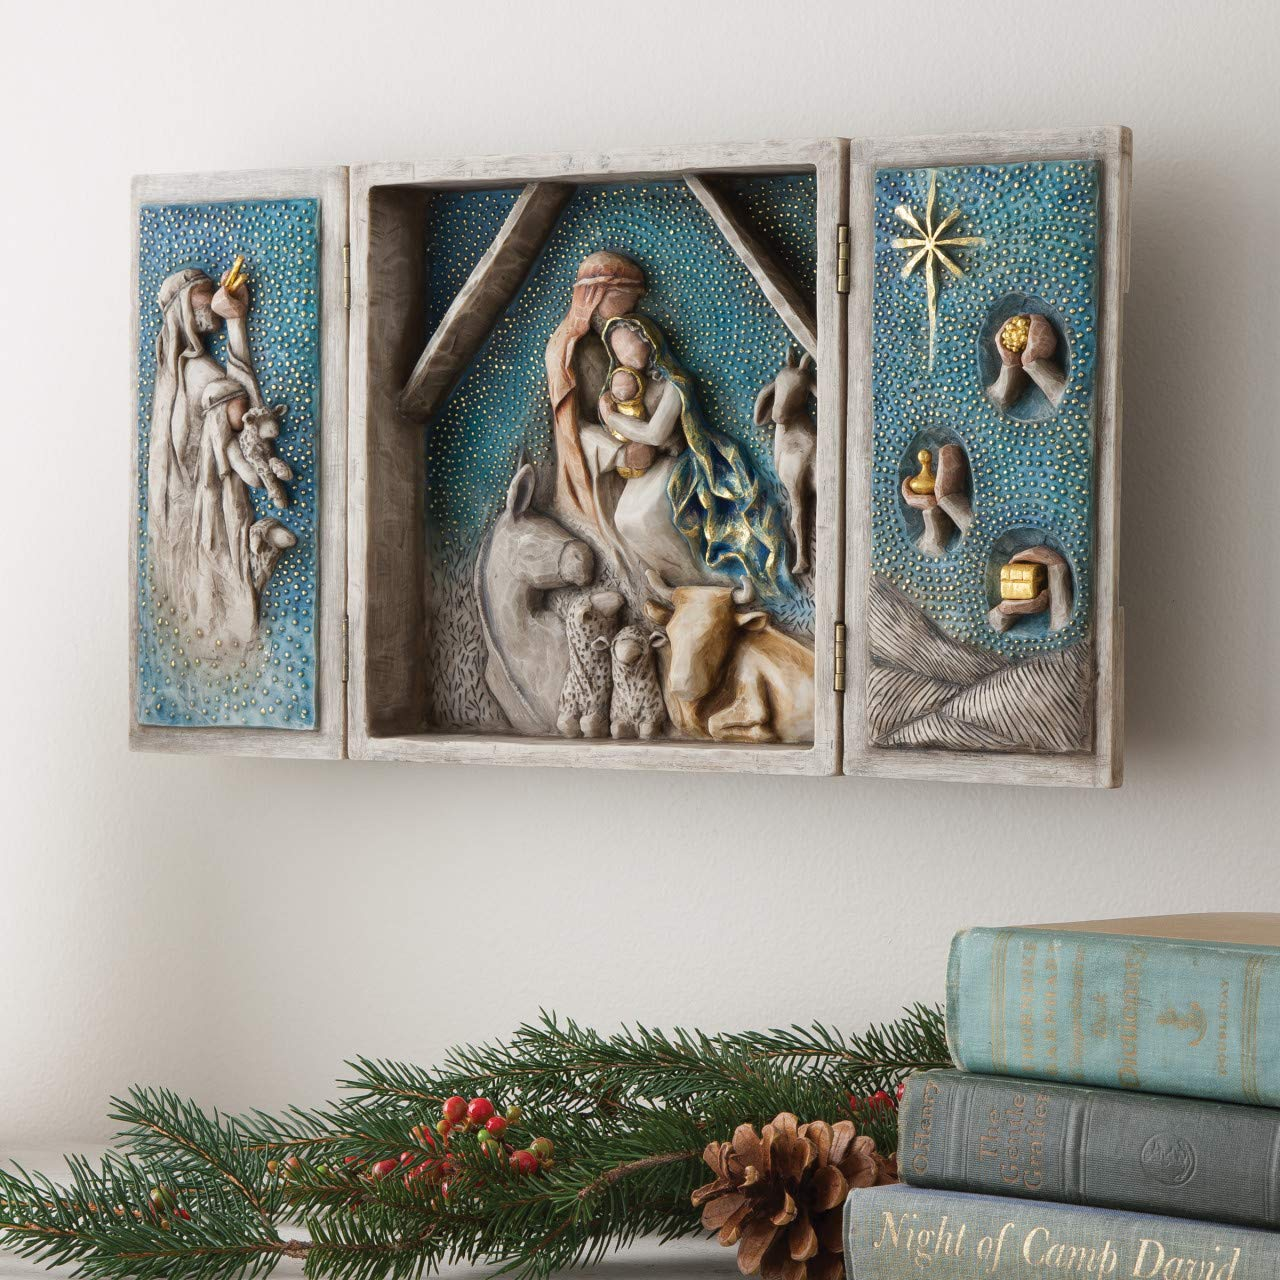 Willow Tree Starry Night Nativity, sculpted hand-painted nativity triptych by Willow Tree (Image #3)